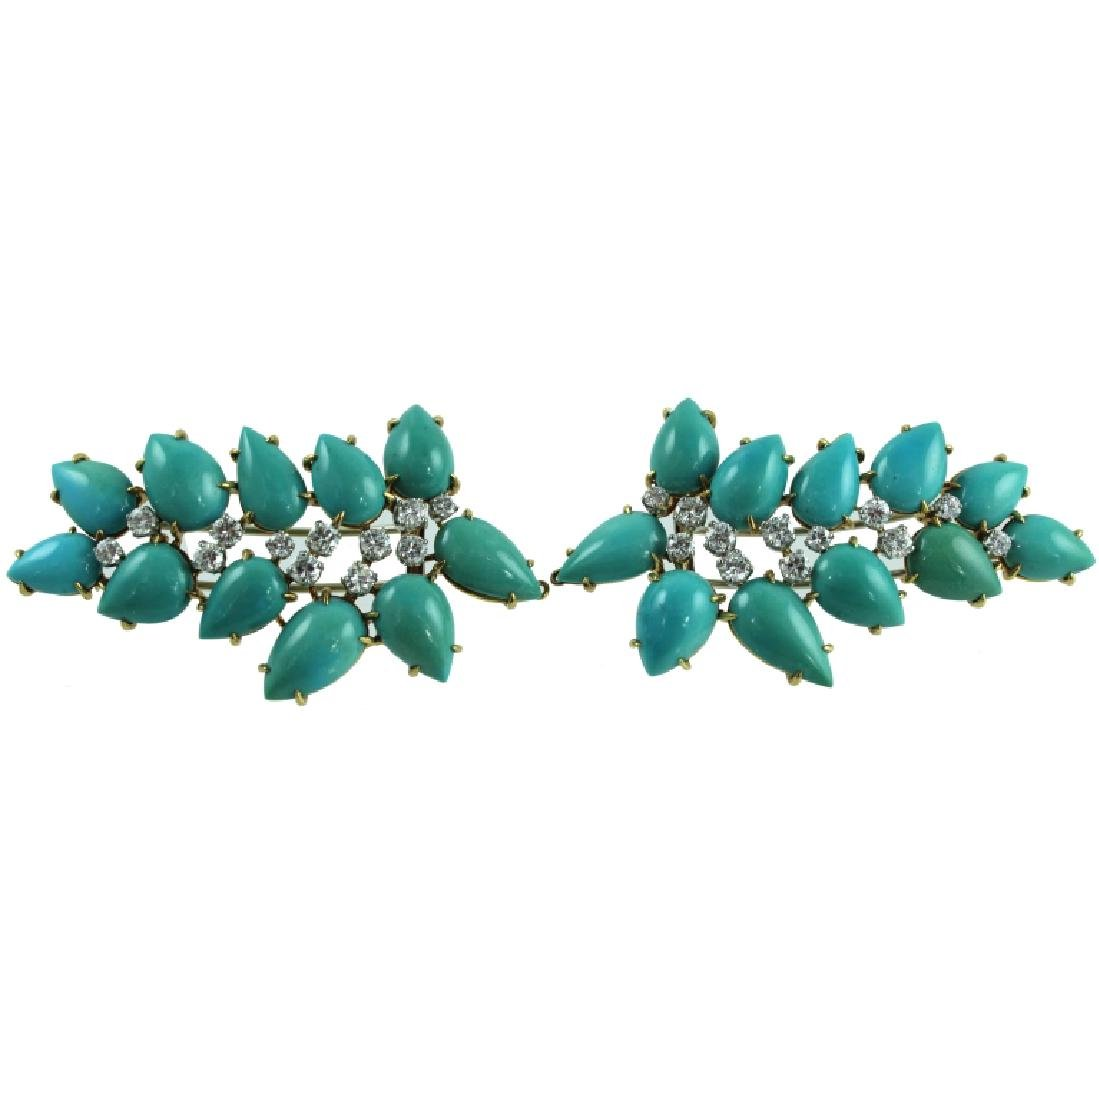 PAIR 18K TURQUOISE & DIAMOND HAIR CLIPS.